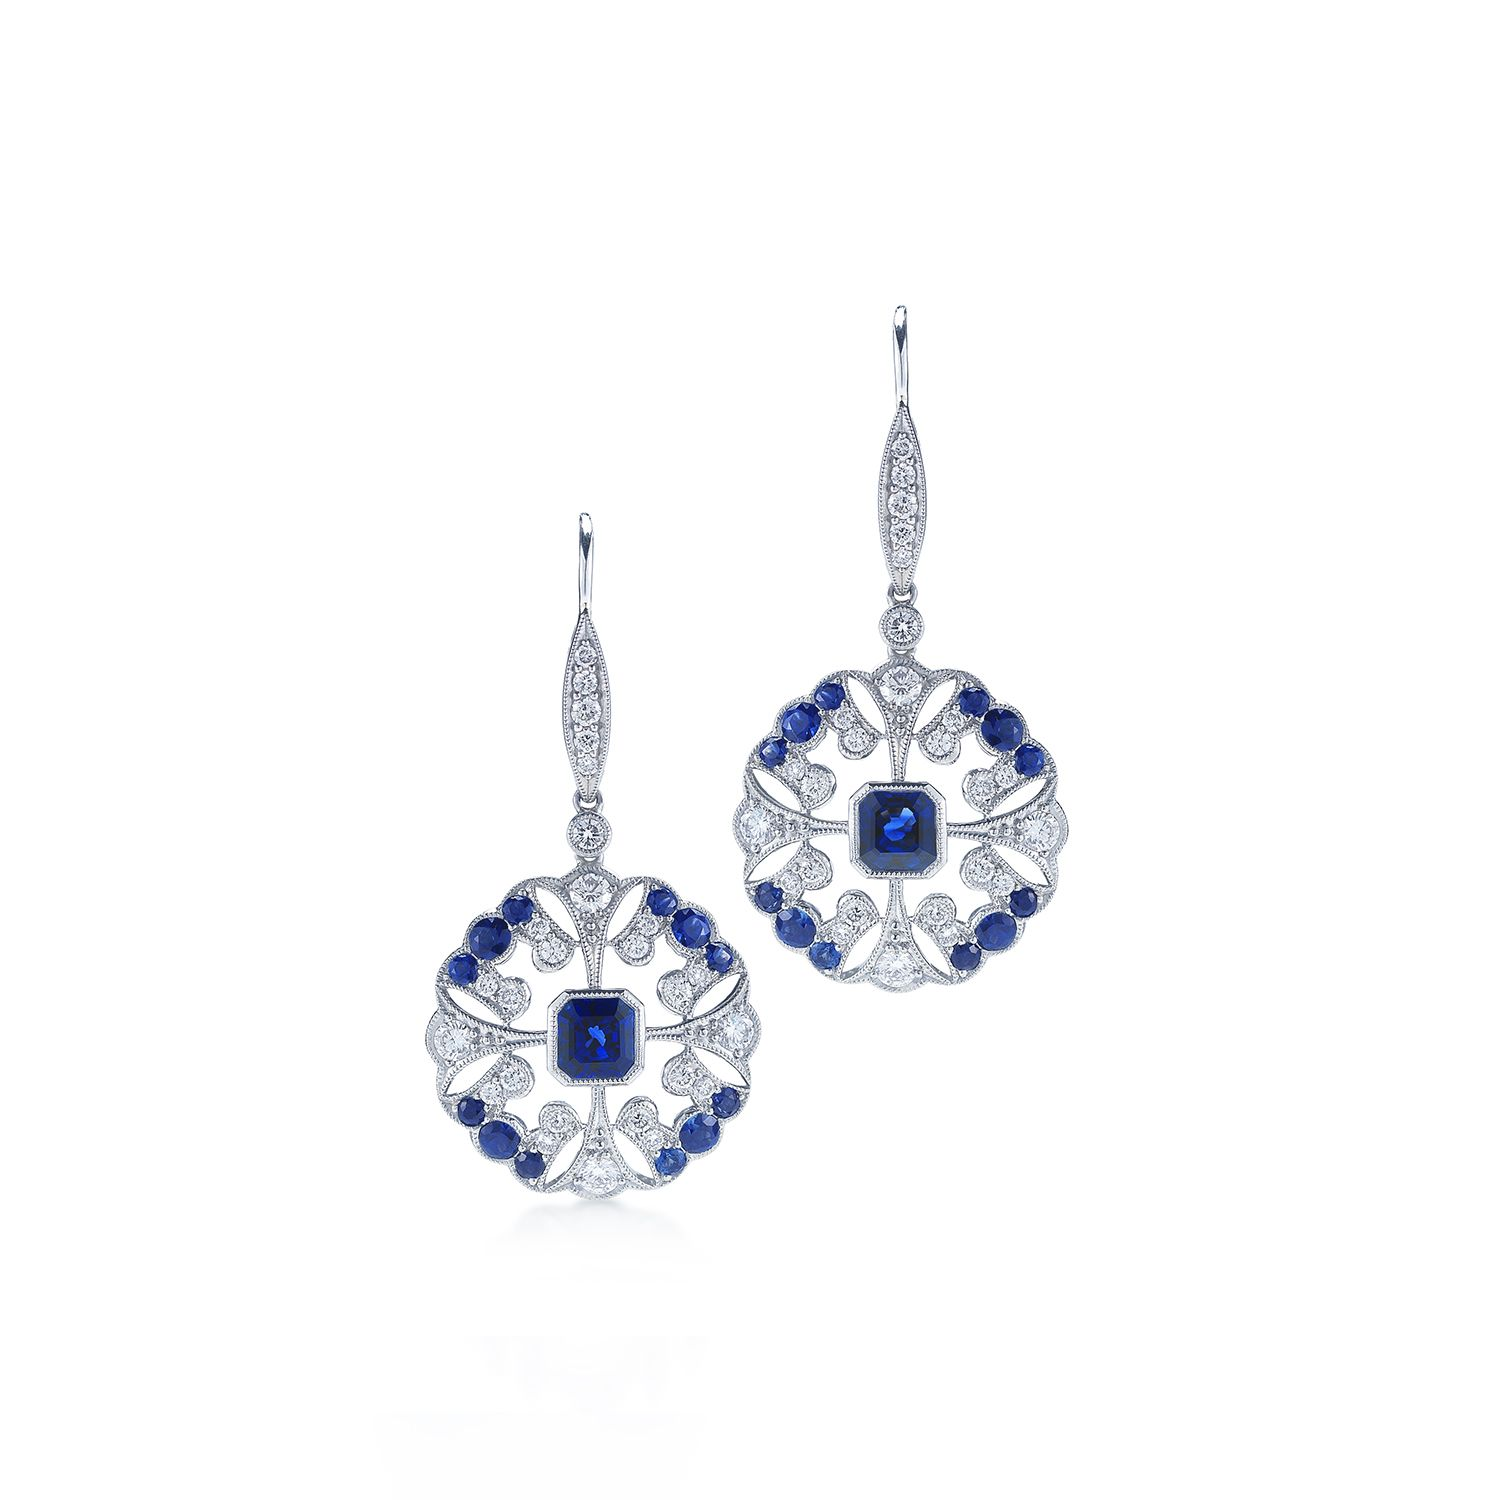 Sapphire and diamond Earrings from Kwiat at DK Gems the Best duty